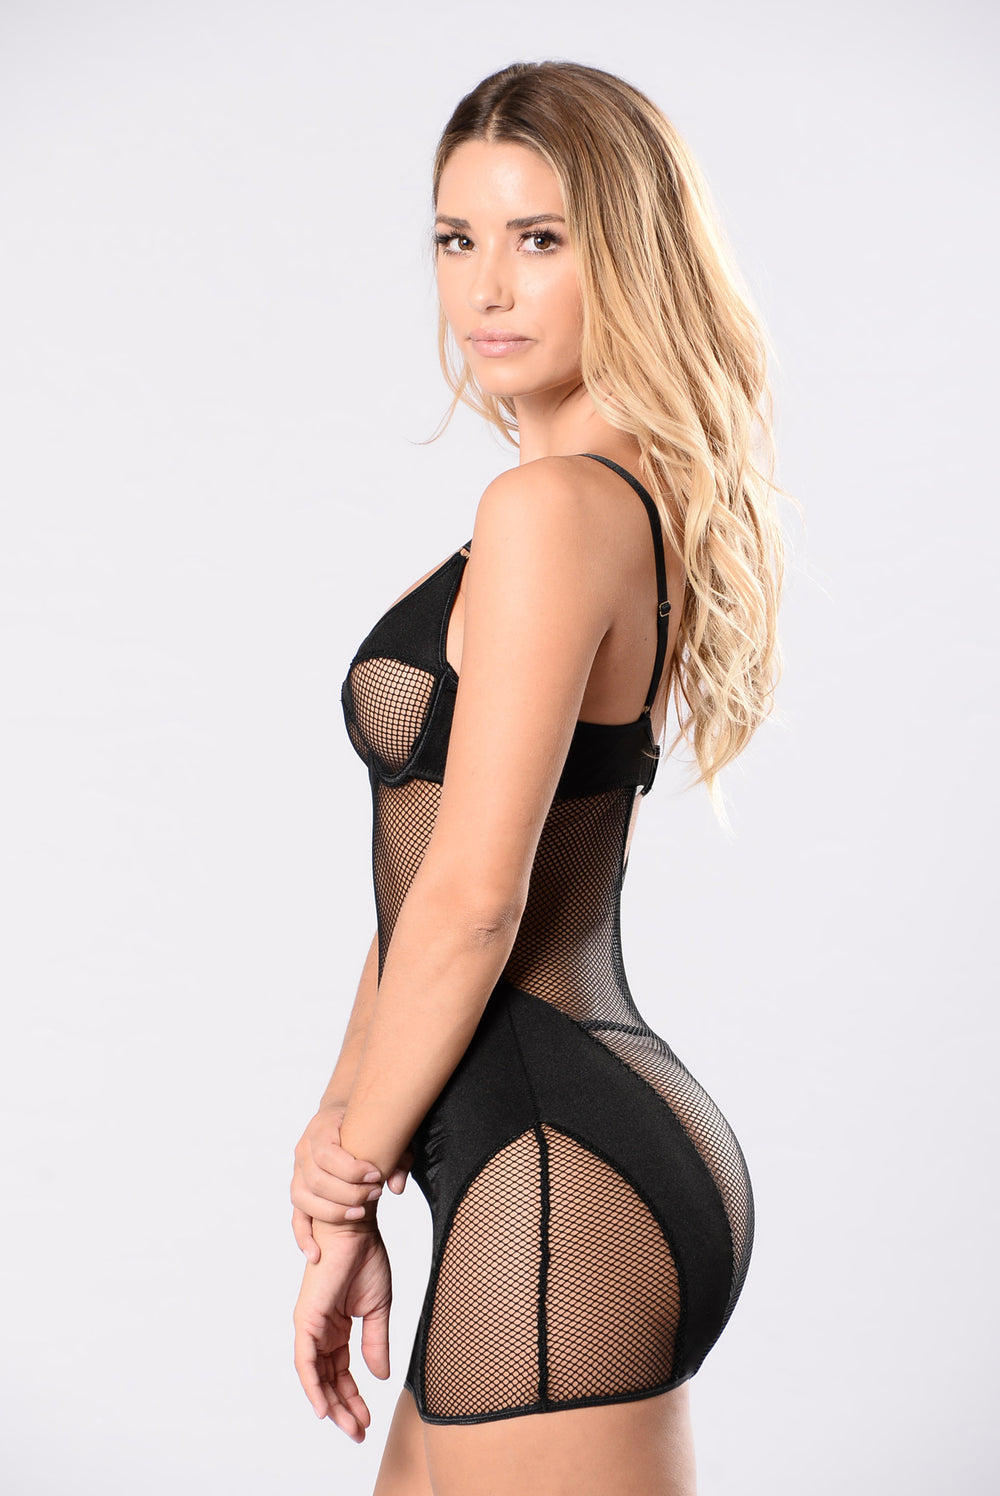 Erotic chemise lingerie set in black sheer